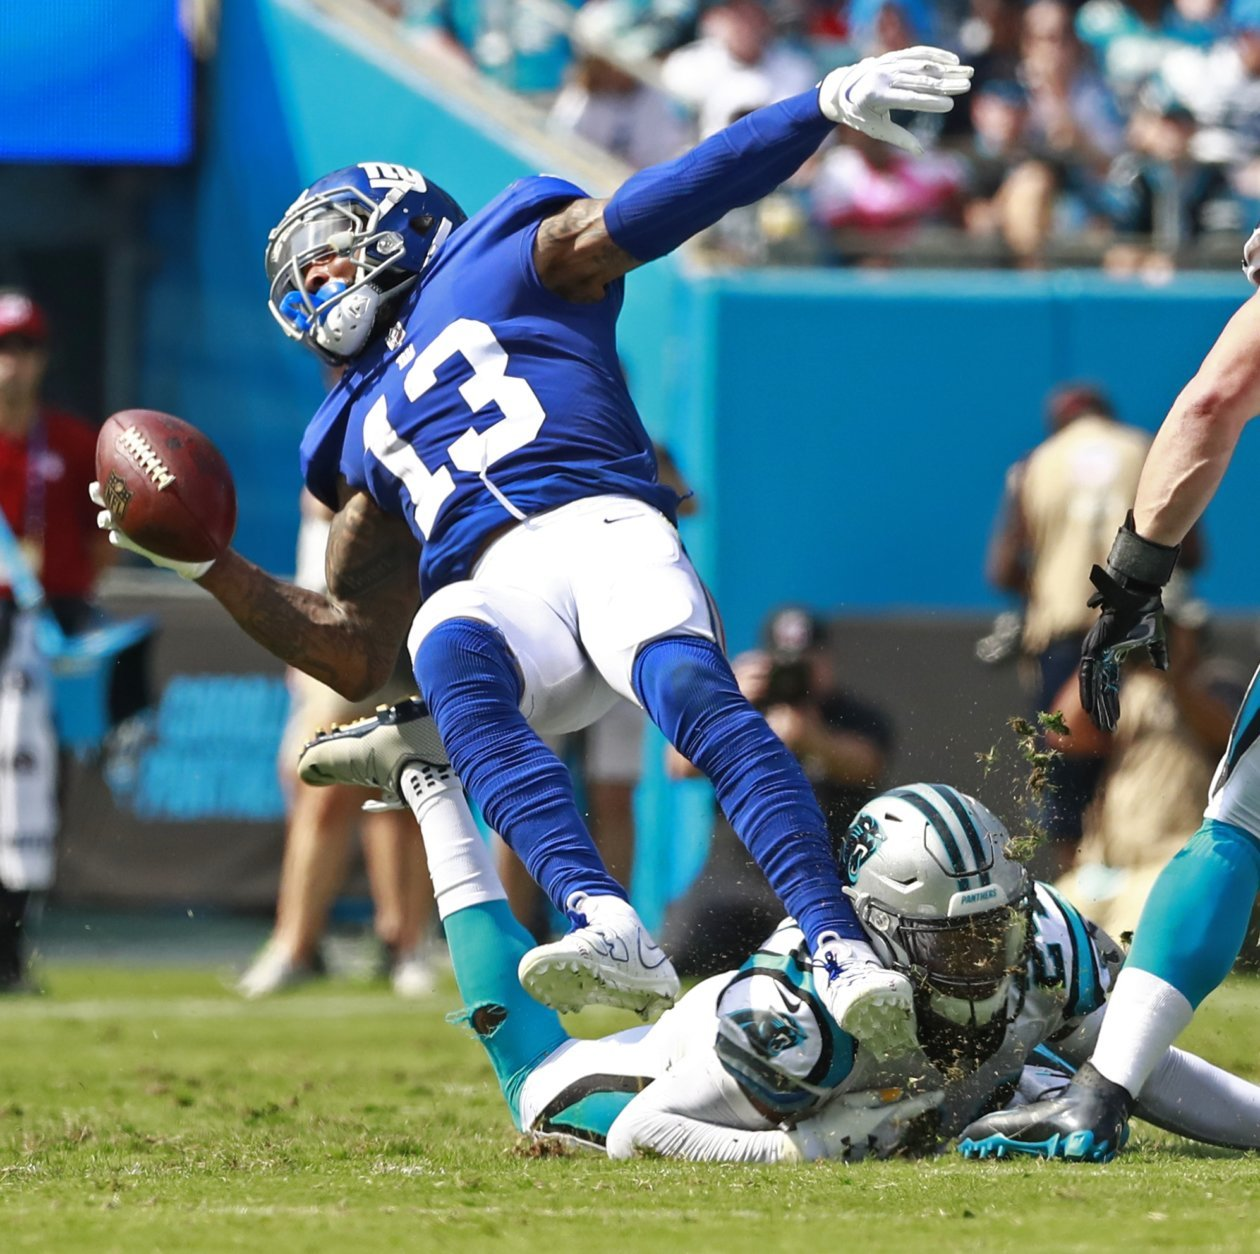 New York Giants' Odell Beckham (13) is tackled by Carolina Panthers' James Bradberry (24) in the first half of an NFL football game in Charlotte, N.C., Sunday, Oct. 7, 2018. (AP Photo/Jason E. Miczek)